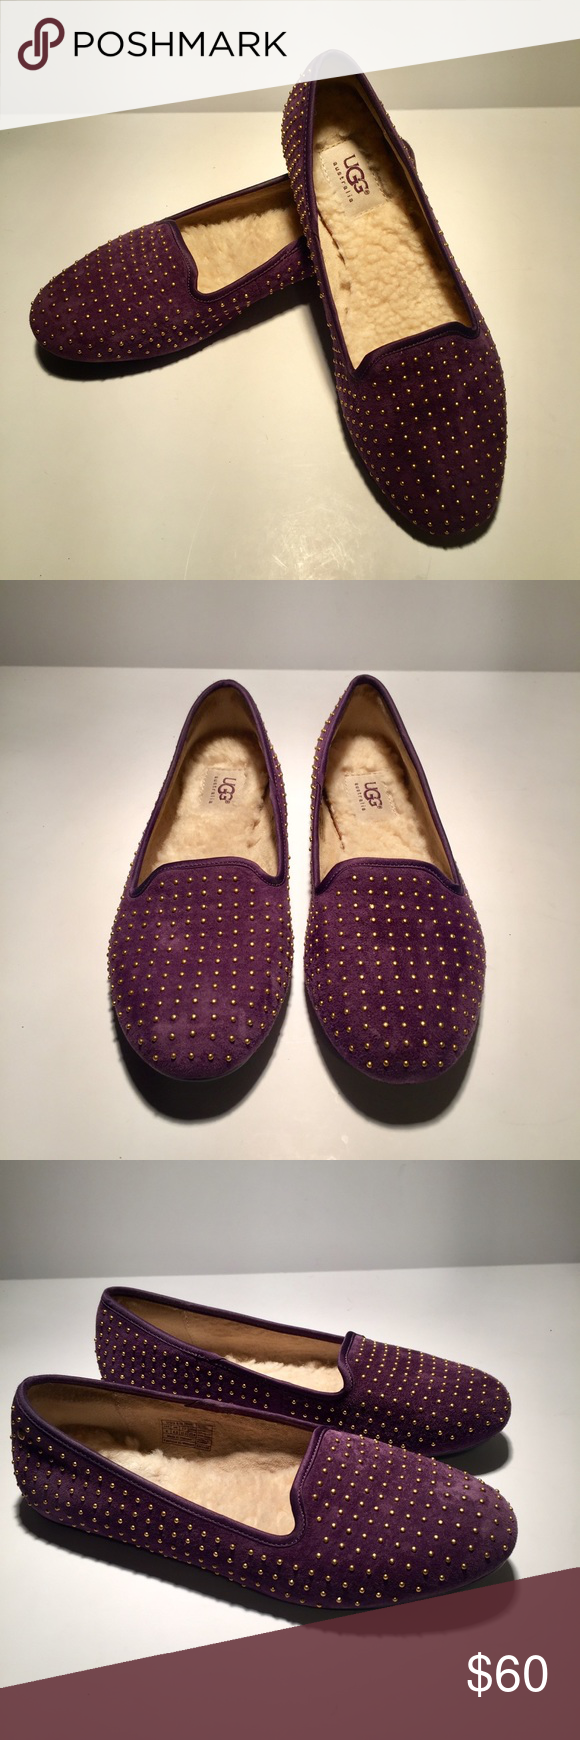 d7a5077485b UGG 'Alloway' Studded Flats Authentic UGG flats in purple suede with ...